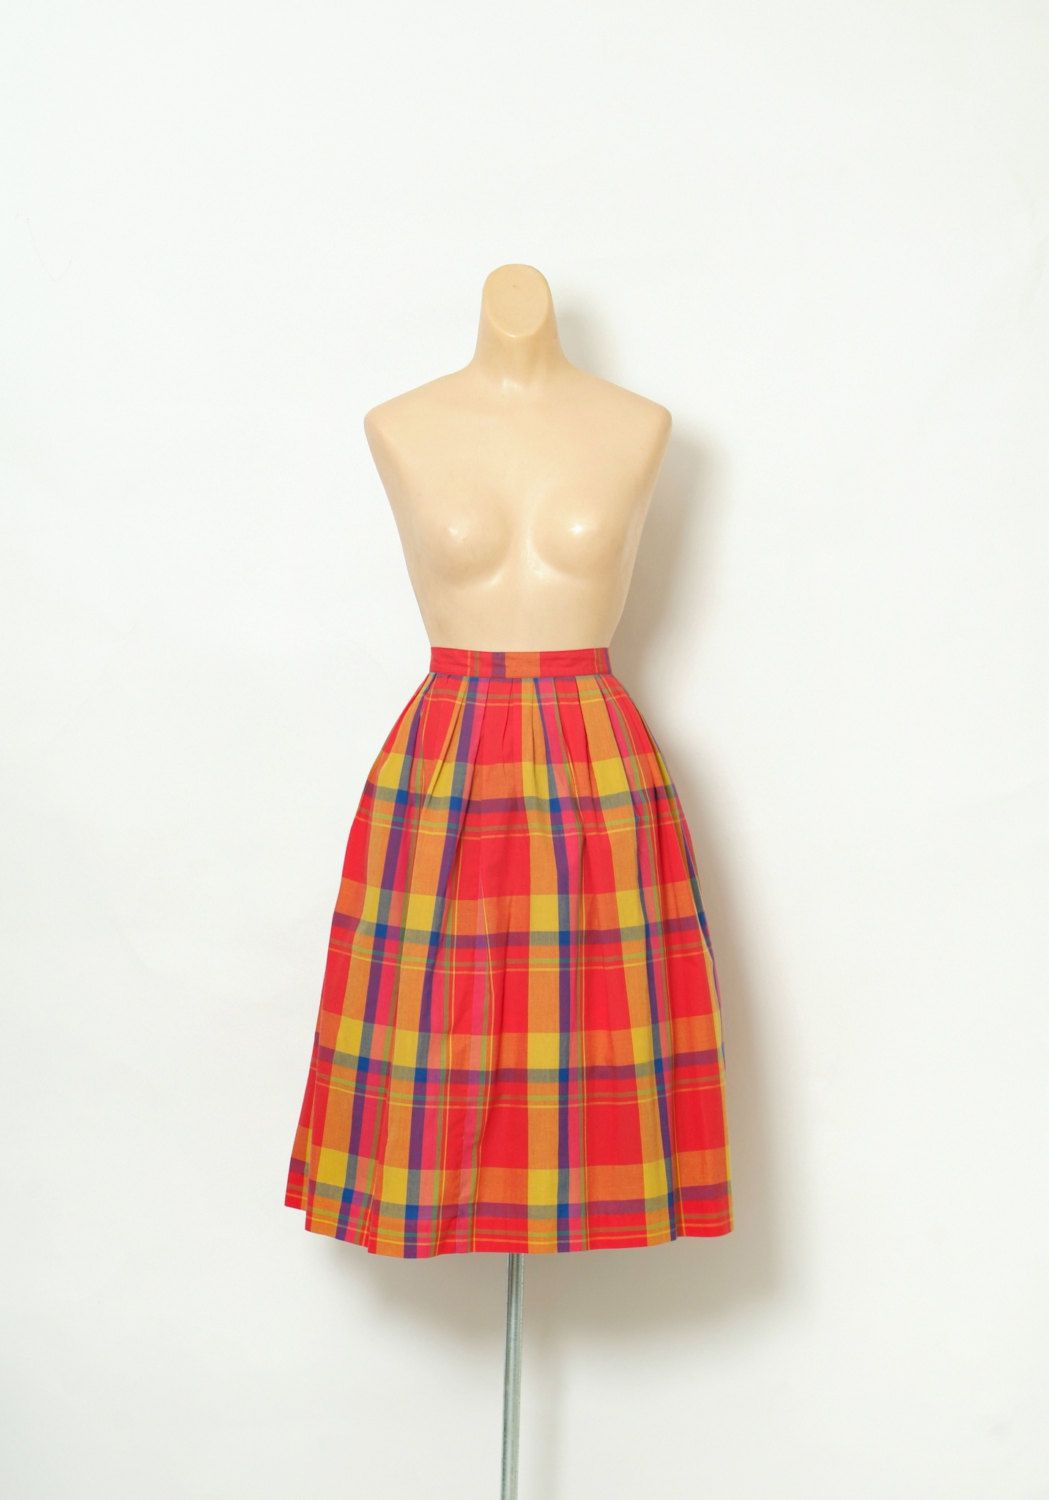 Vintage 80s Skirts  / 80s  / retro / 80s Skirts / Plaid /Vintage fashion / gift for 20 / vintage 80's / 1980s / new wave by VintageBoxFashions on Etsy